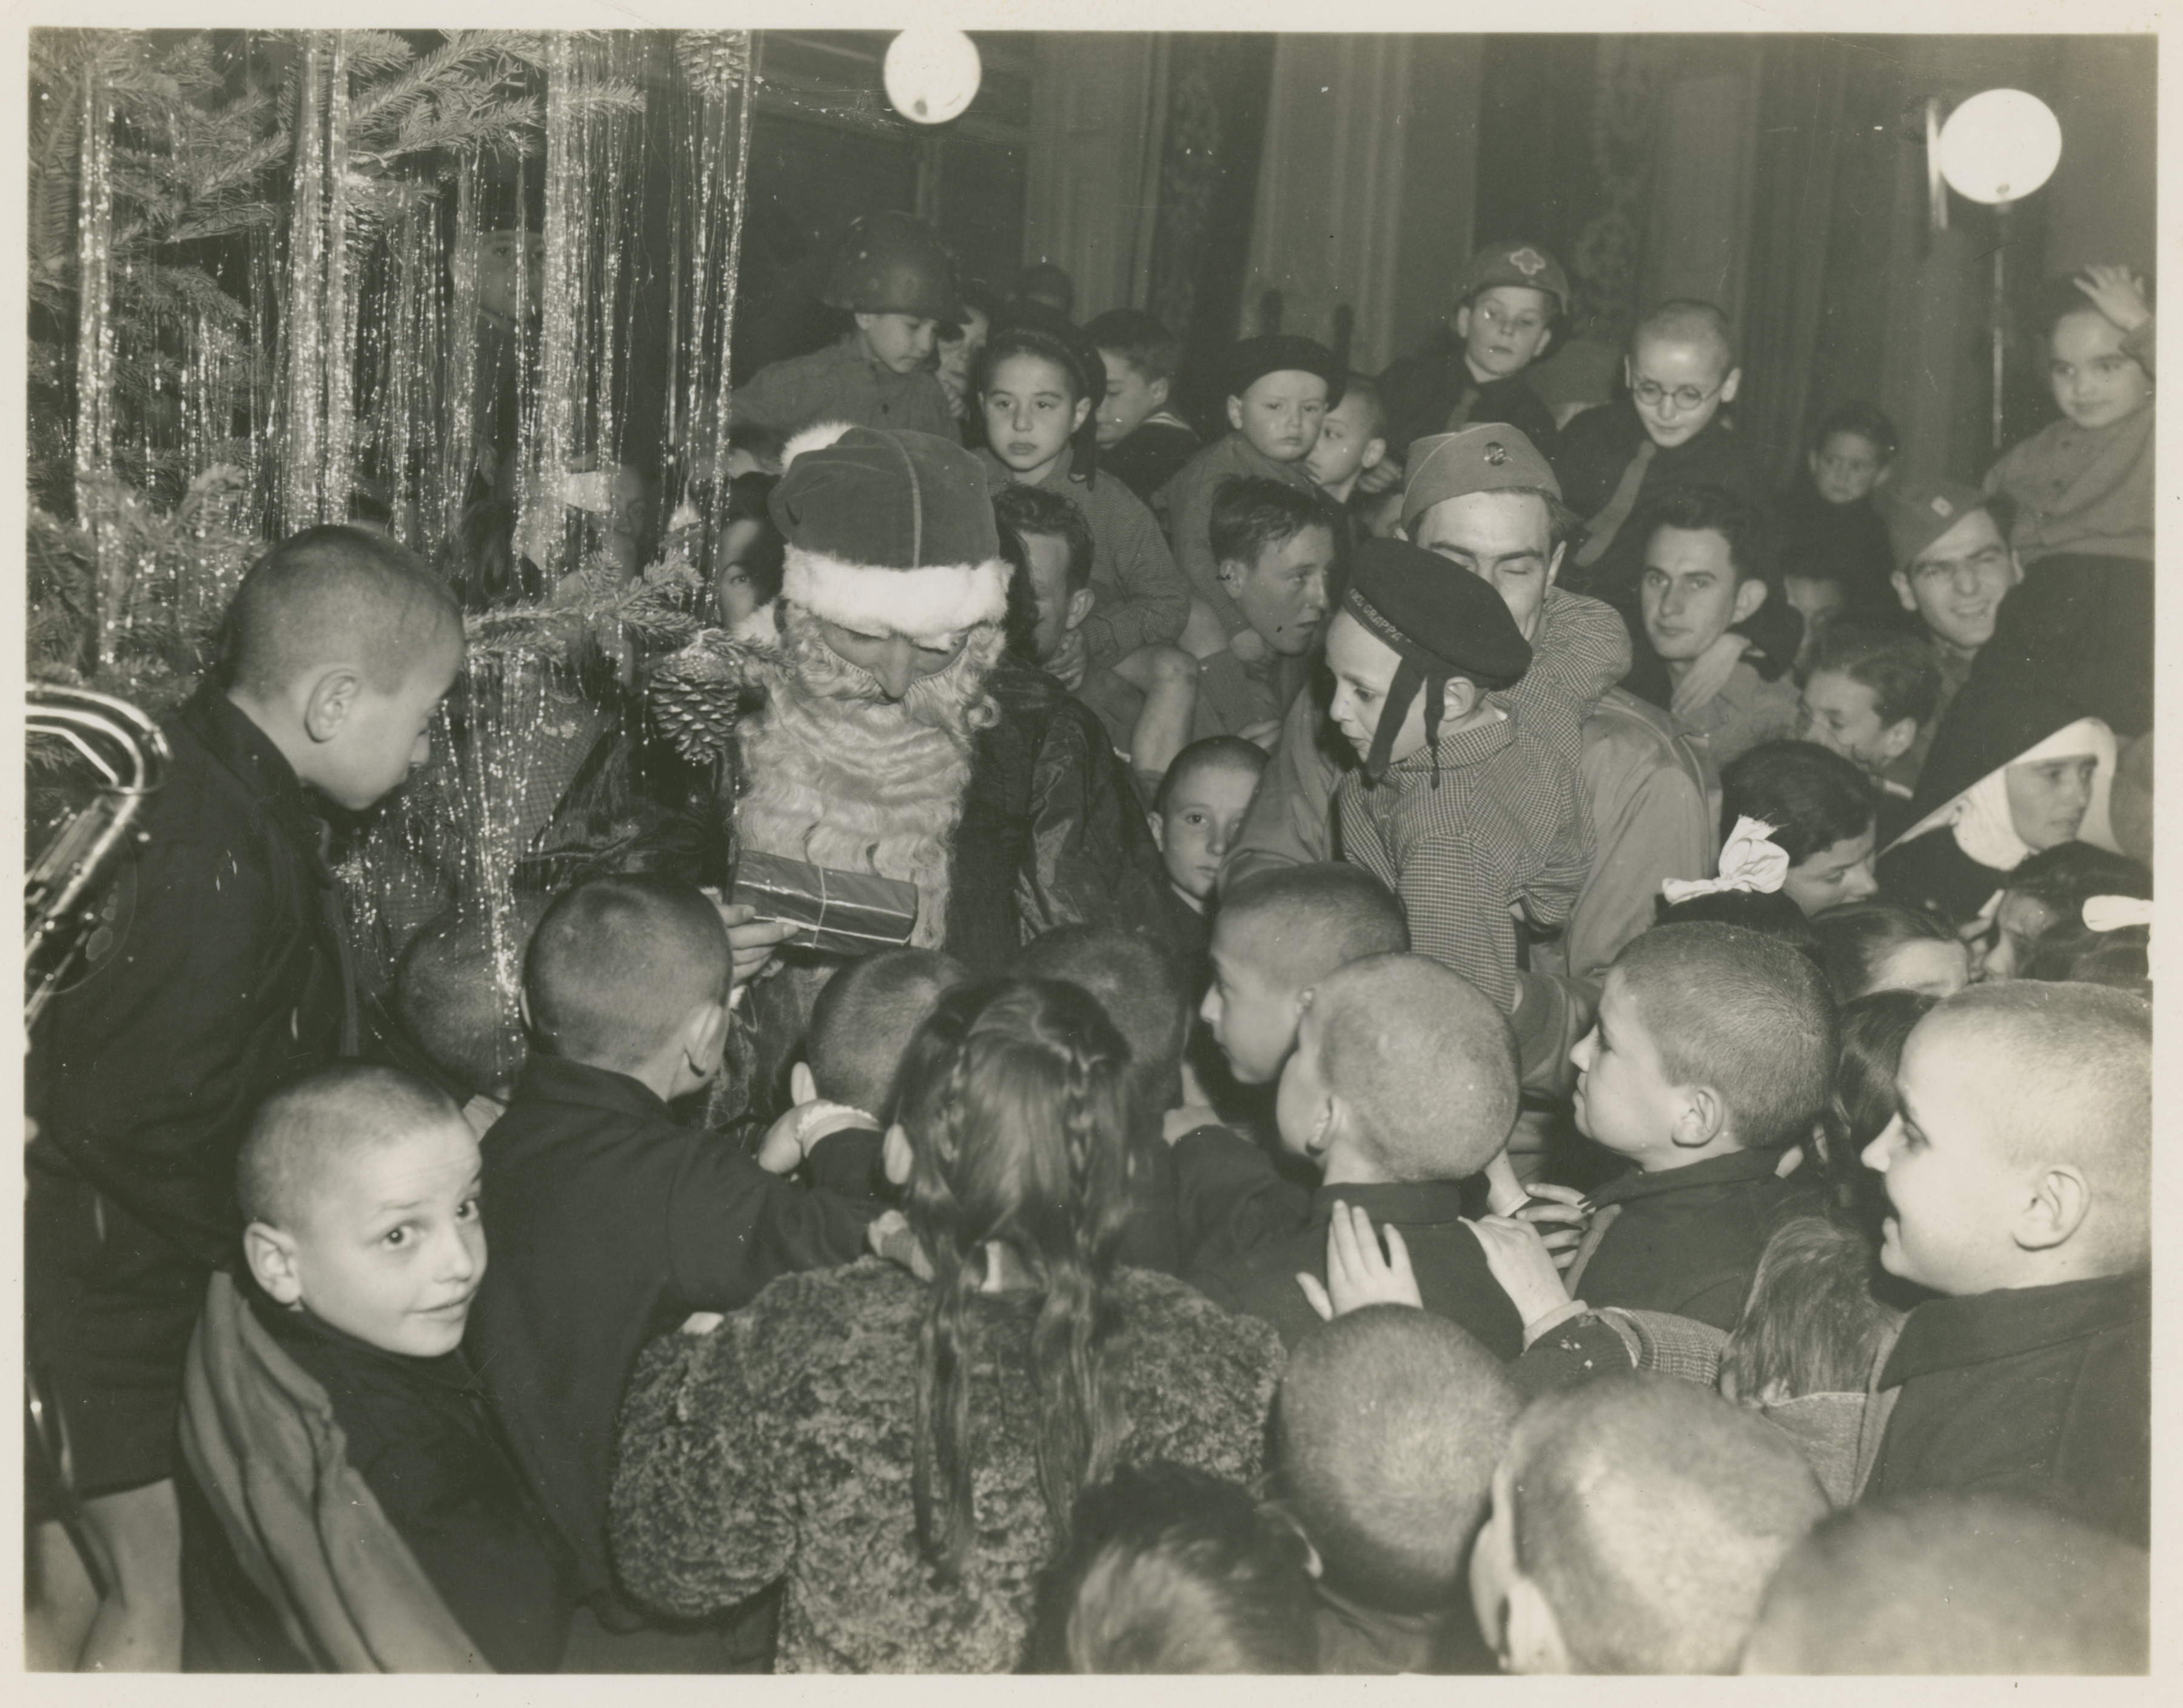 Ww2 Christmas Gifts.American Officer Dressed As Santa Claus Hands Out Gifts To